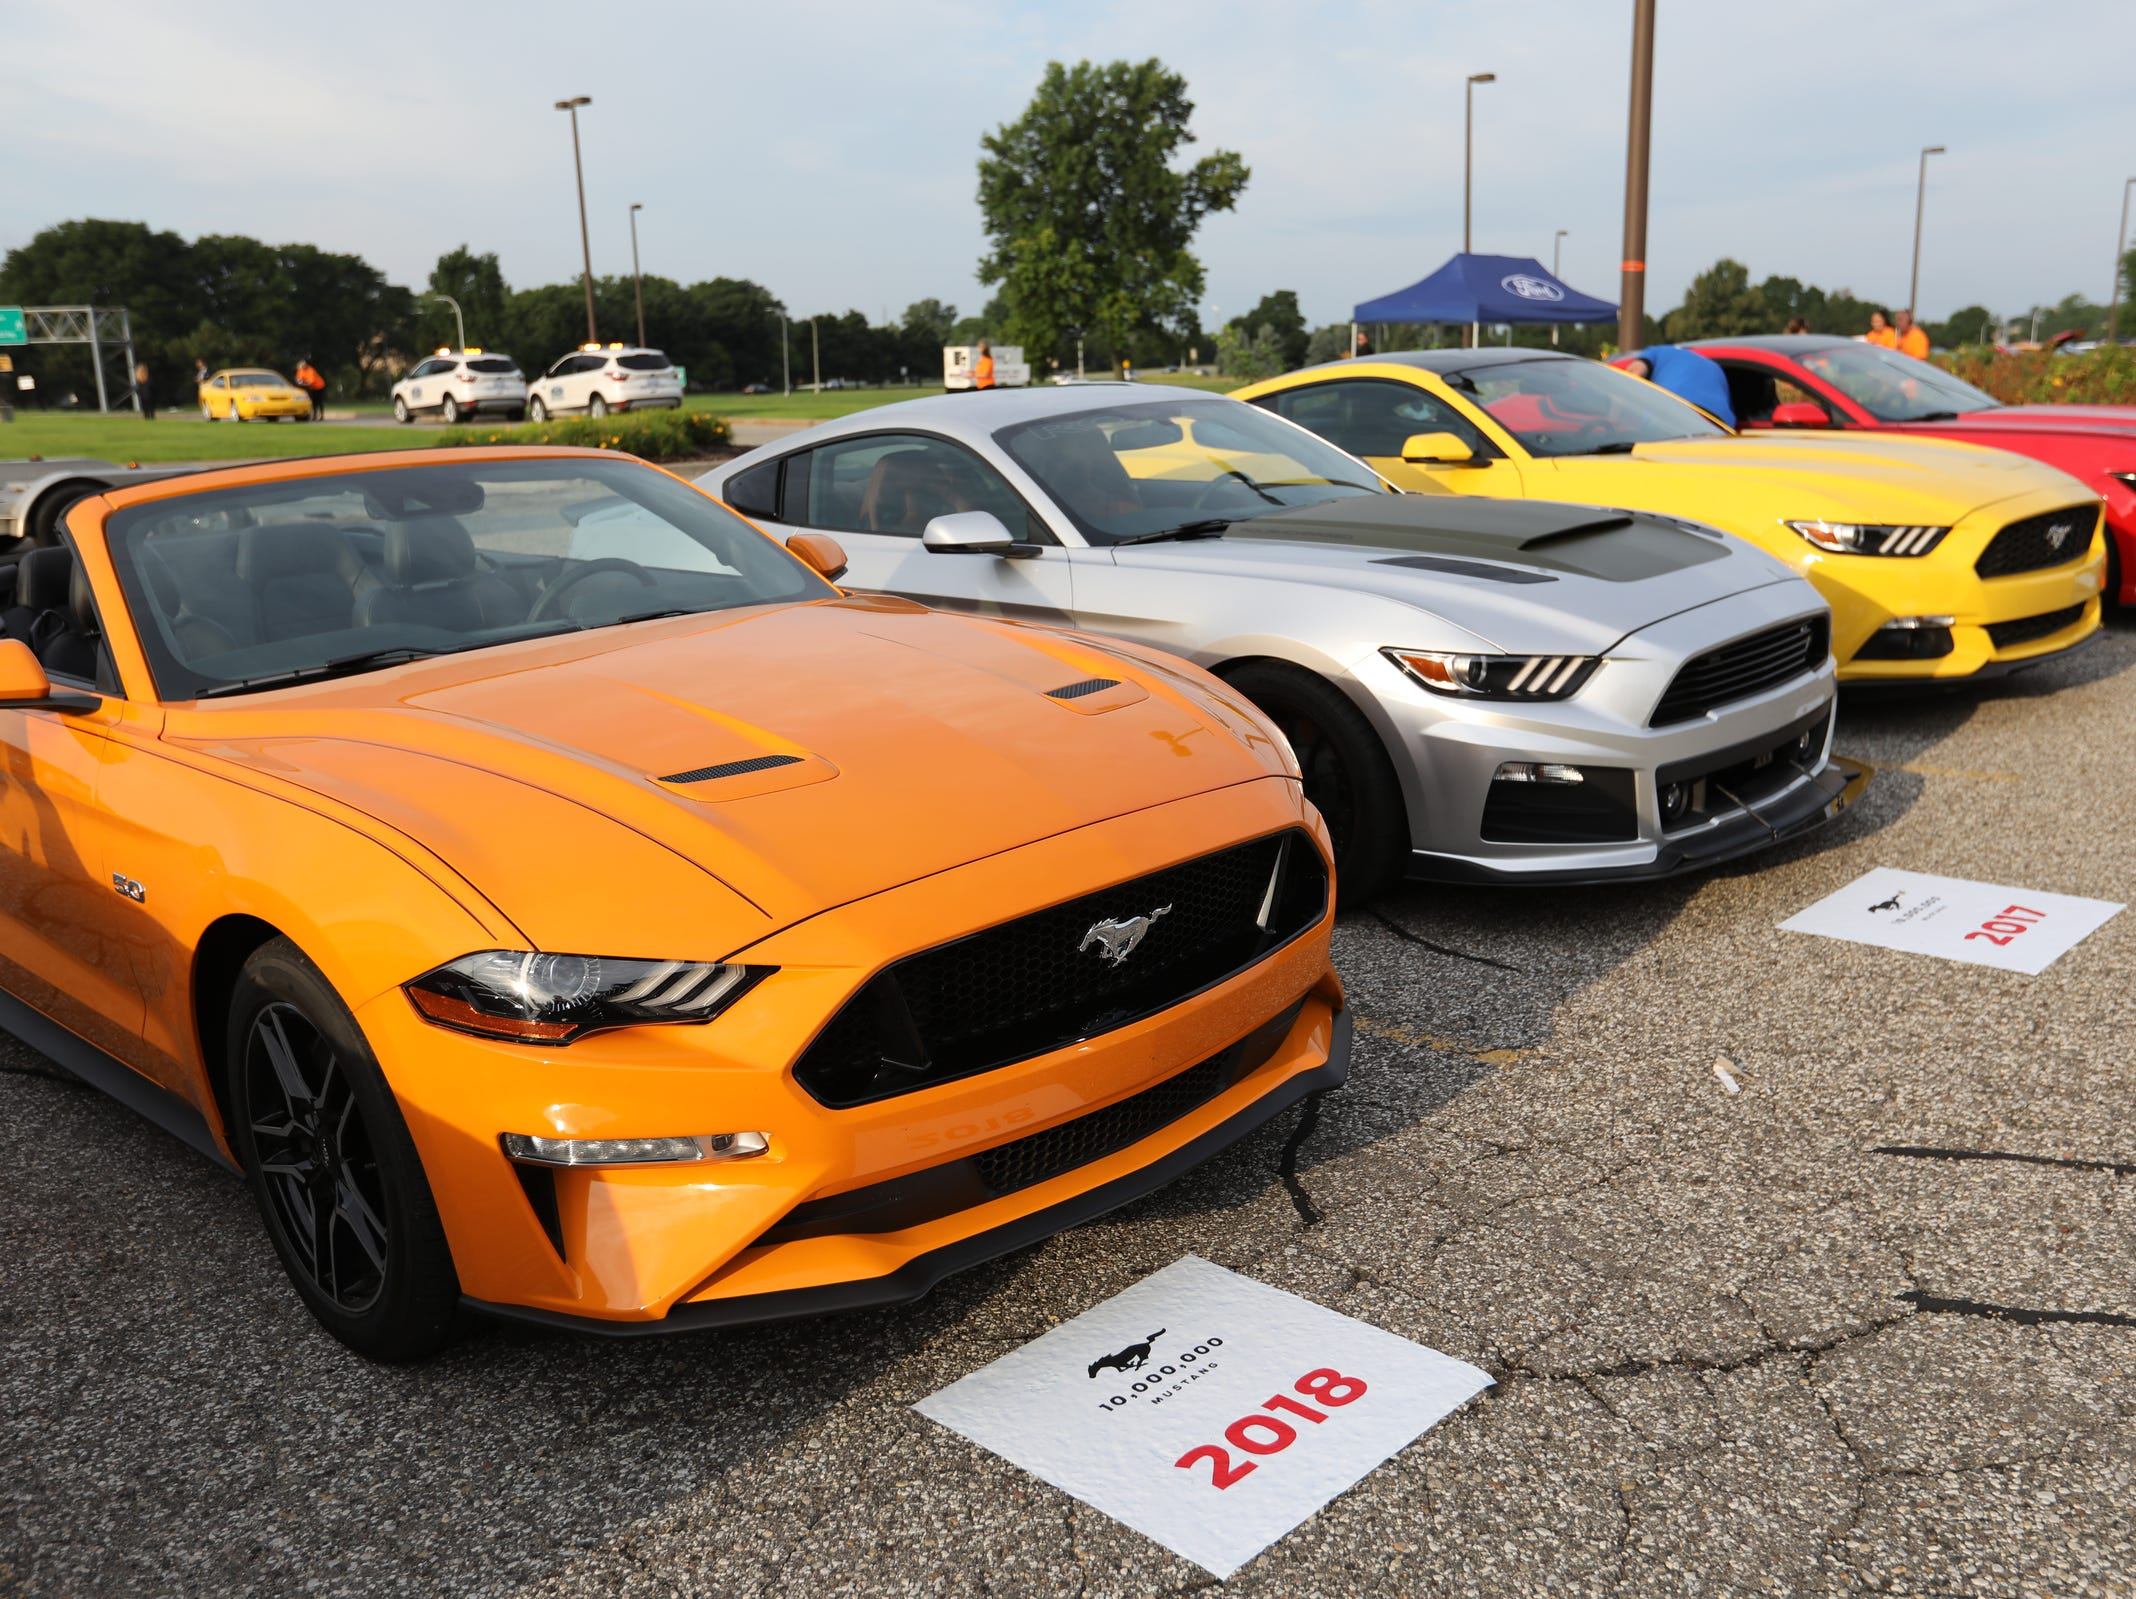 New Ford Mustangs from 2018 to 2015 are lined up in the parking lot during a Ford event celebrating the 10,000,000 Mustang built at the Ford Motor Company World Headquarters in Dearborn on Wed., Aug 8, 2018.